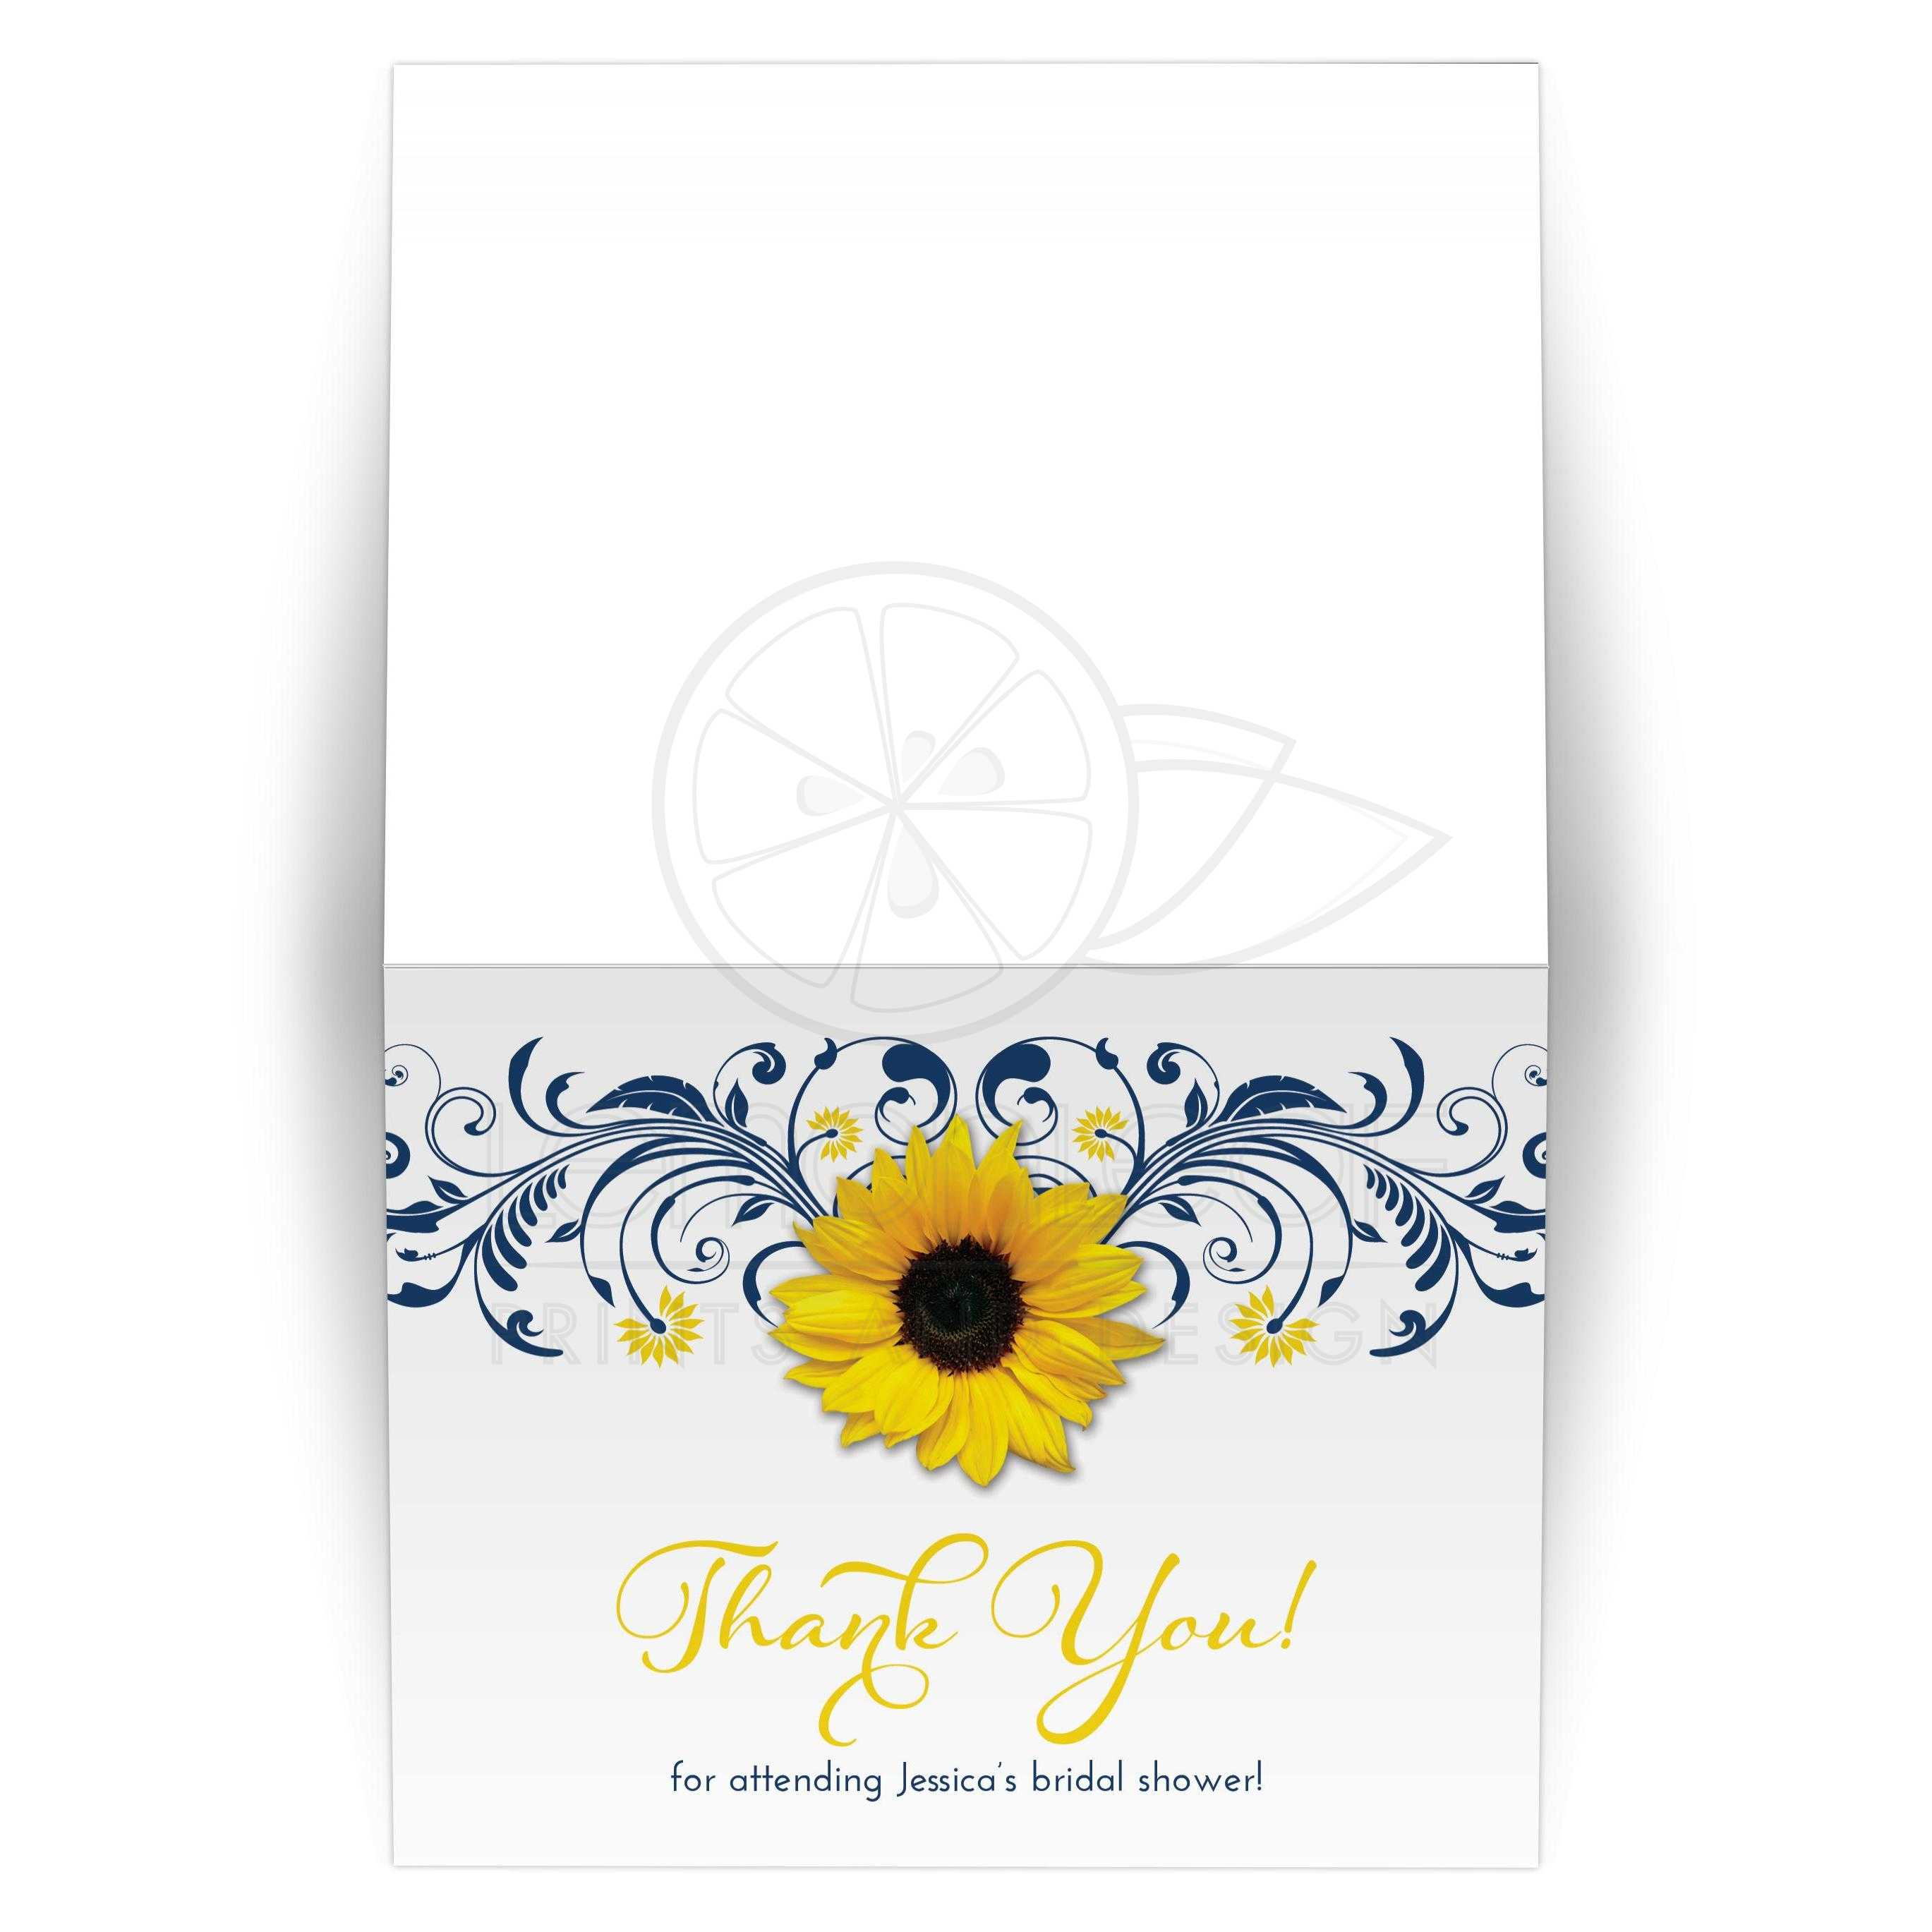 Navy Blue And White Fl Yellow Sunflower Elegant Bridal Shower Thank You Card